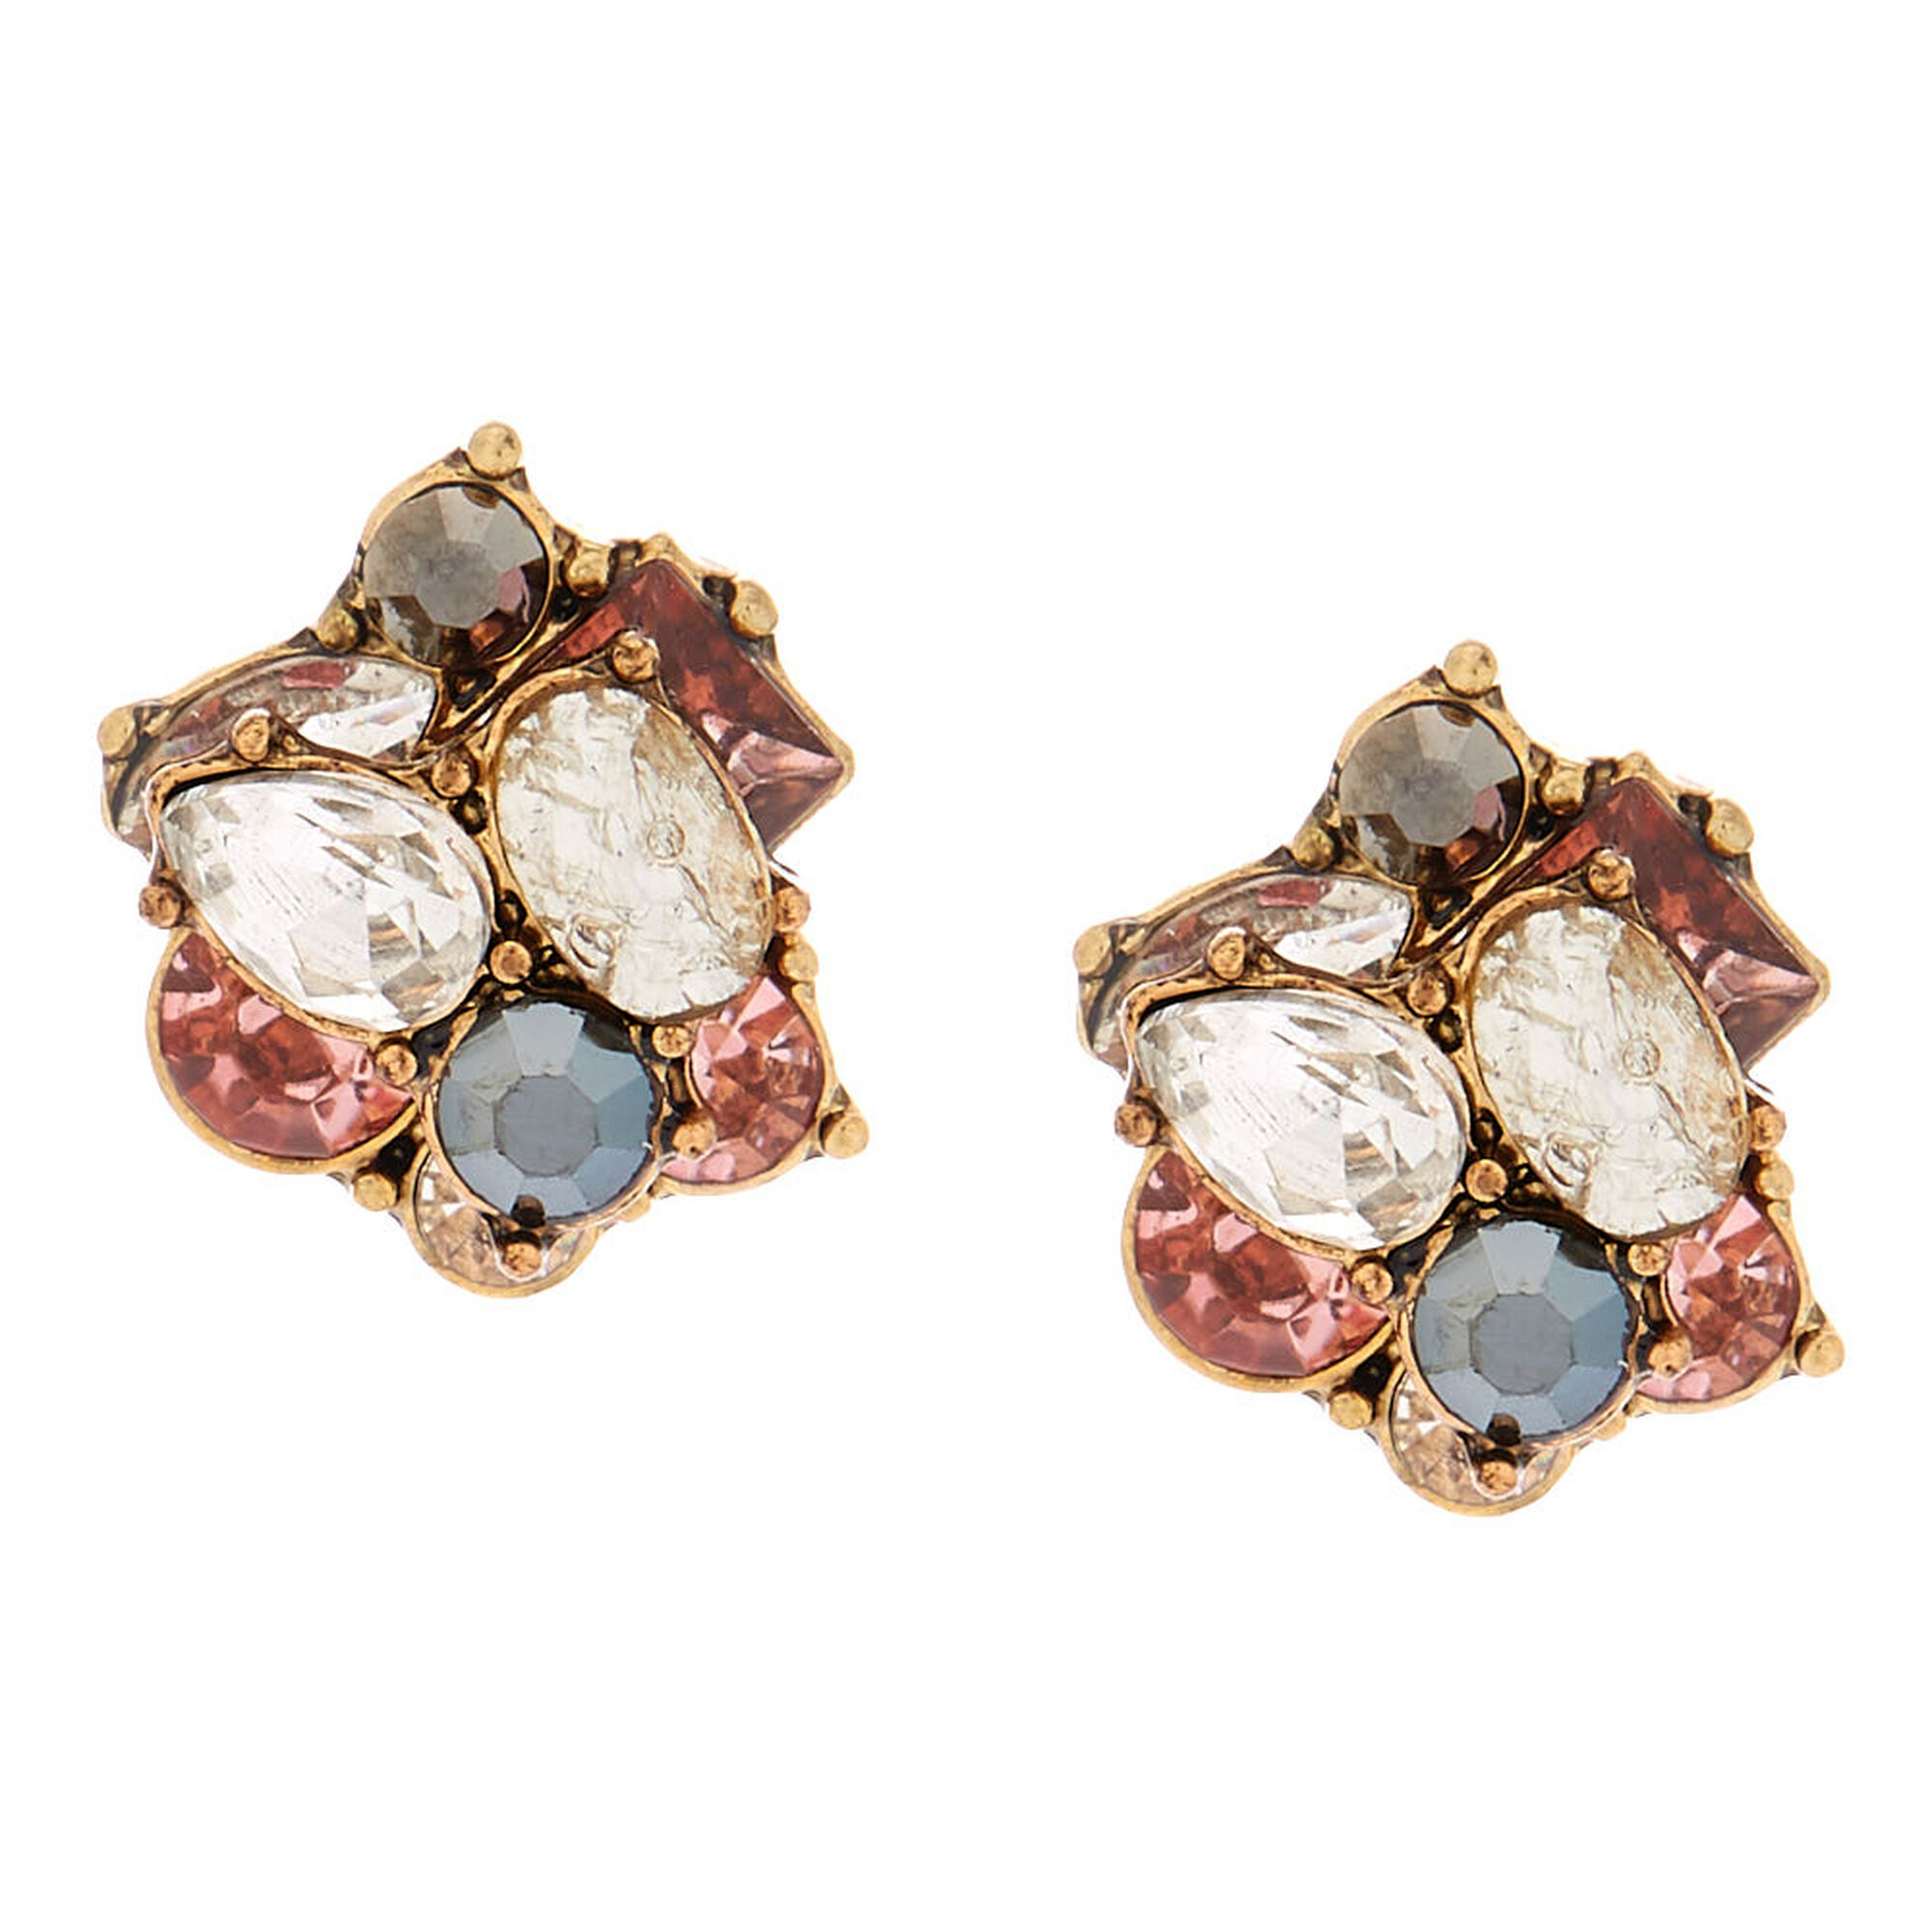 Antique Gold Embellished Stud Earrings Pink